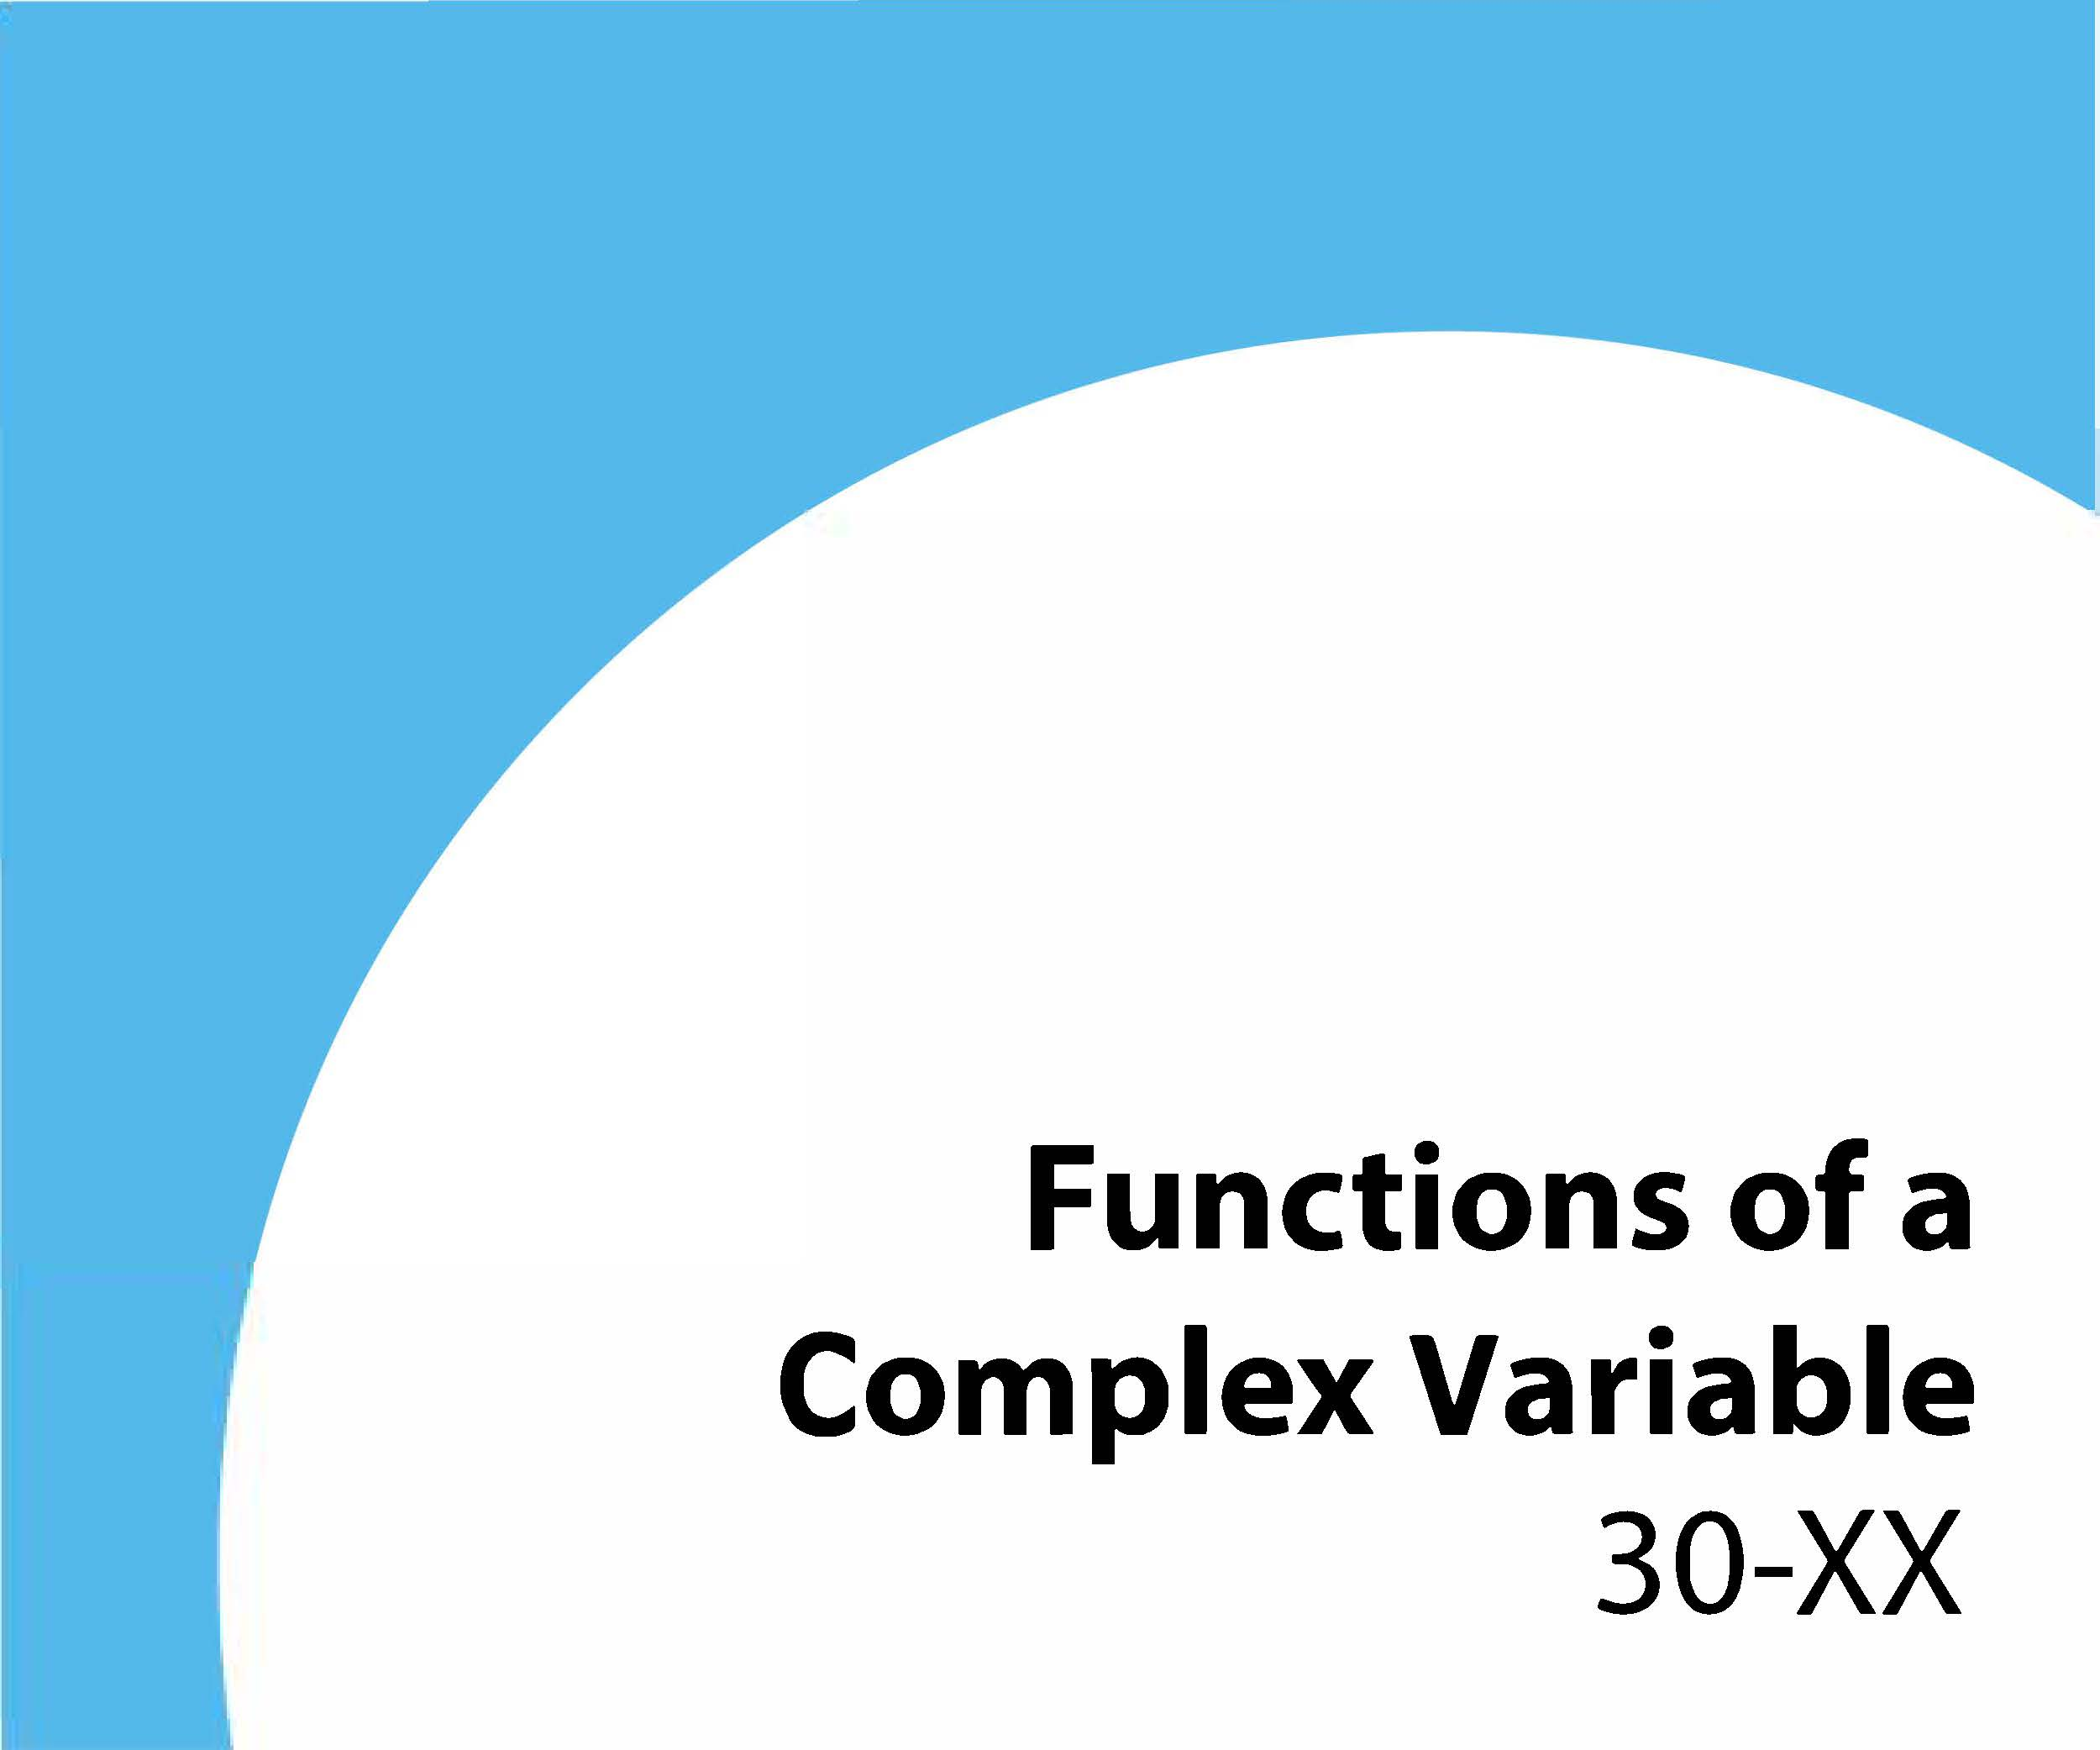 30-xx Functions of a complex variable